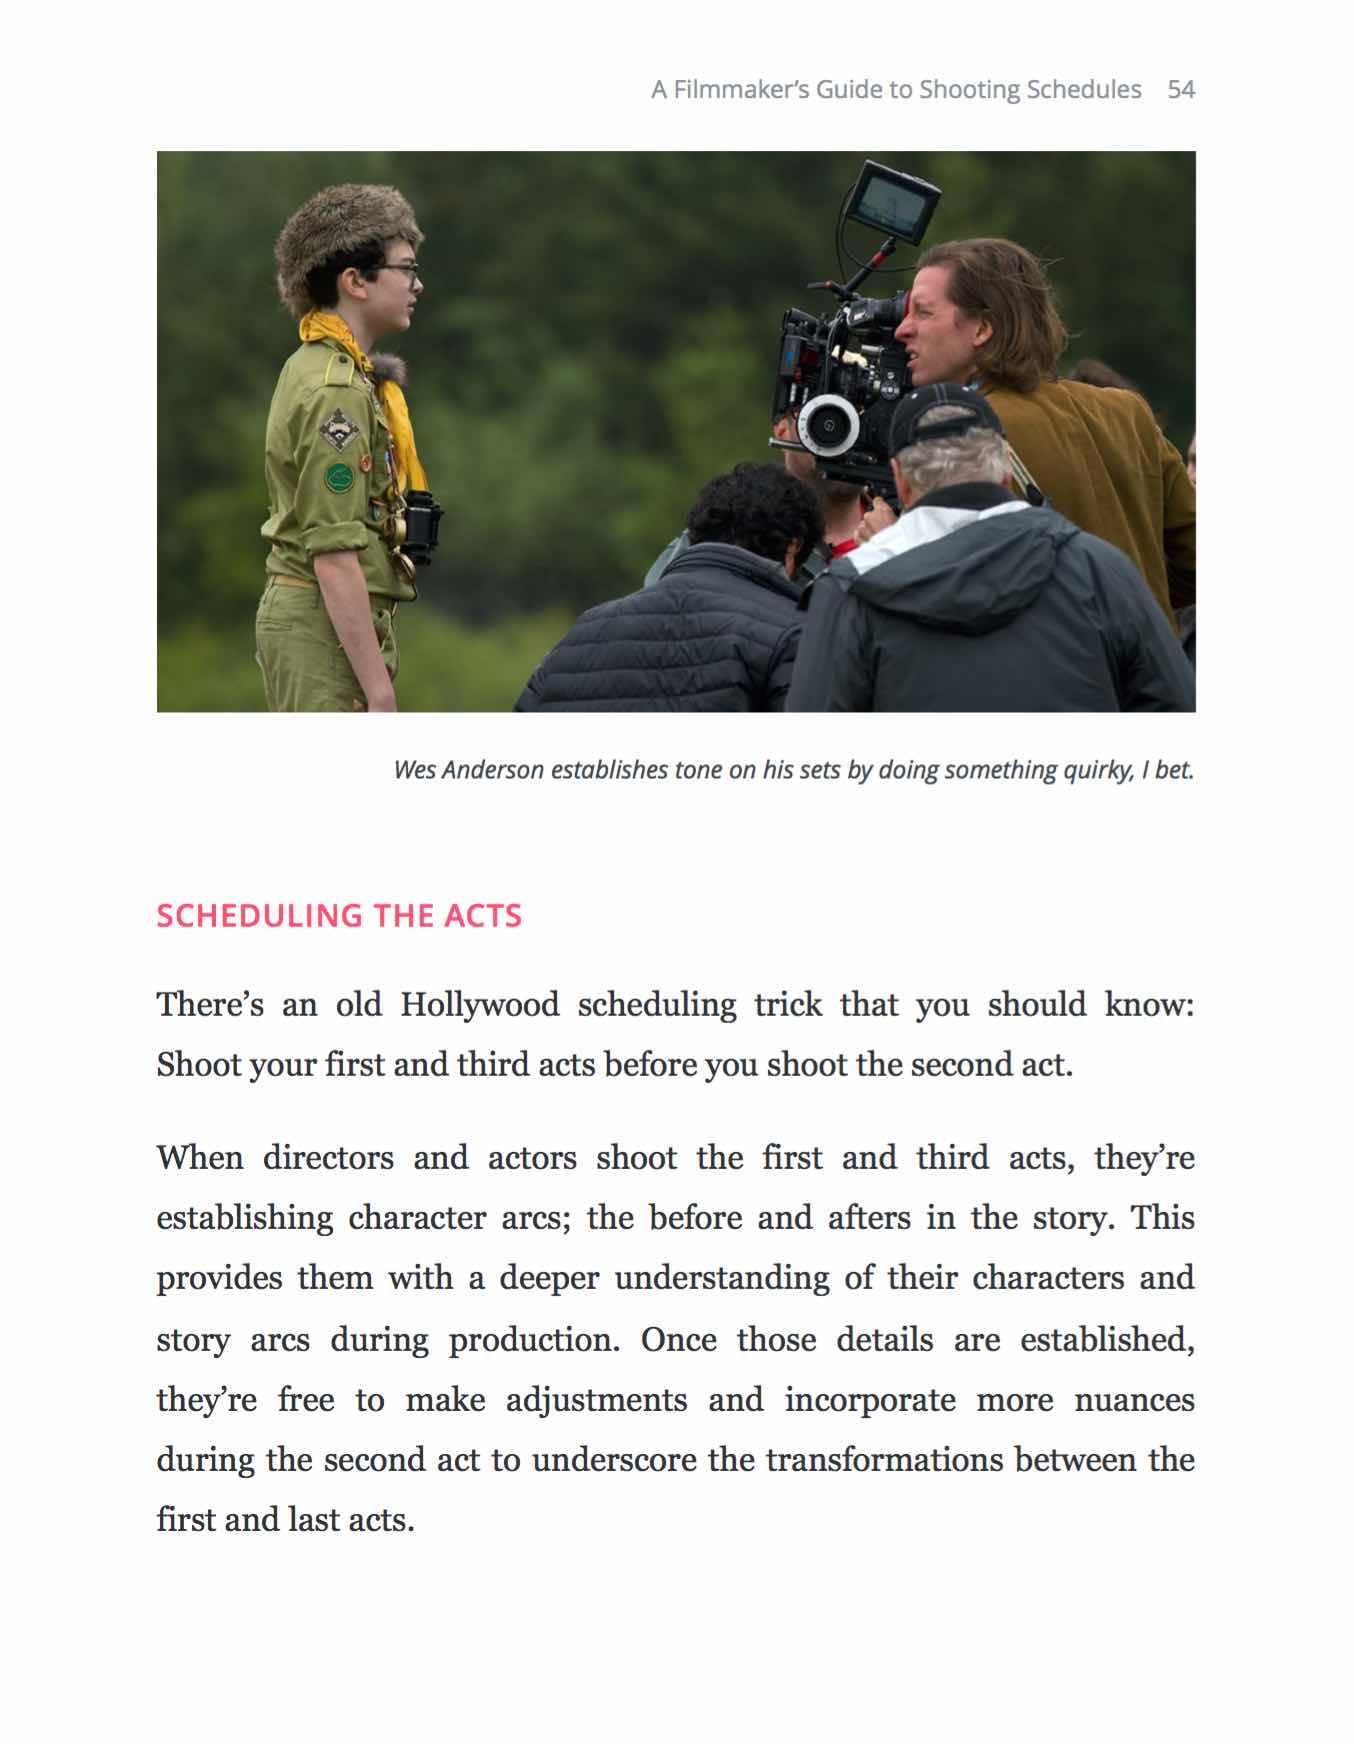 A Filmmakers Guide to Shooting Schedules - Page-54 Free Ebook - StudioBinder